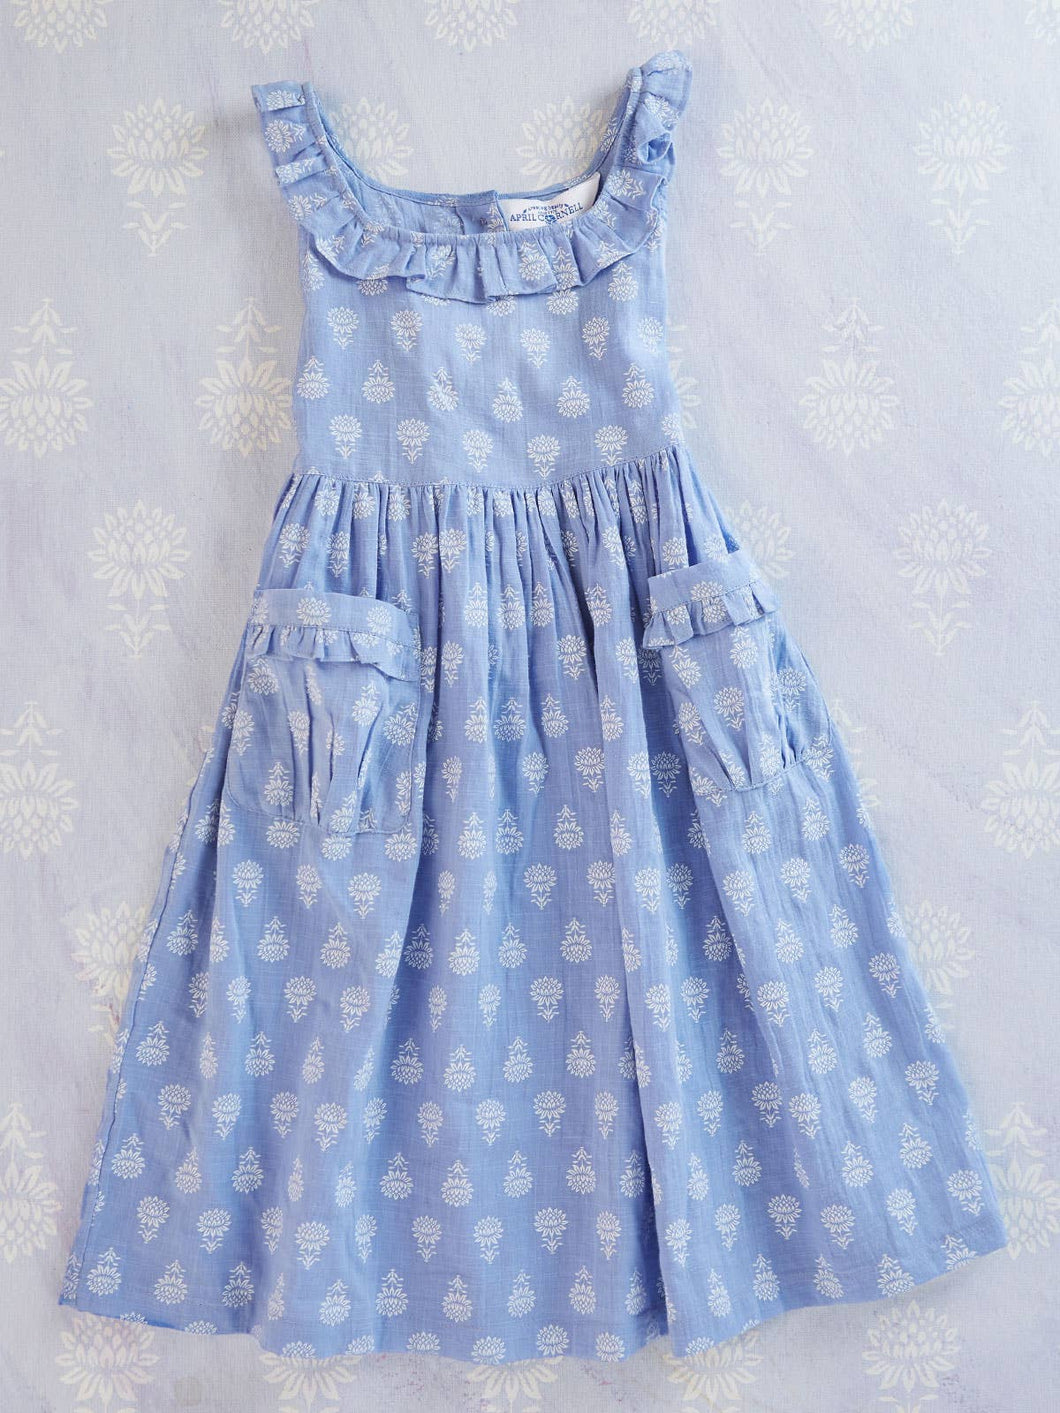 April Cornell - Sunflower Little Girls Dress